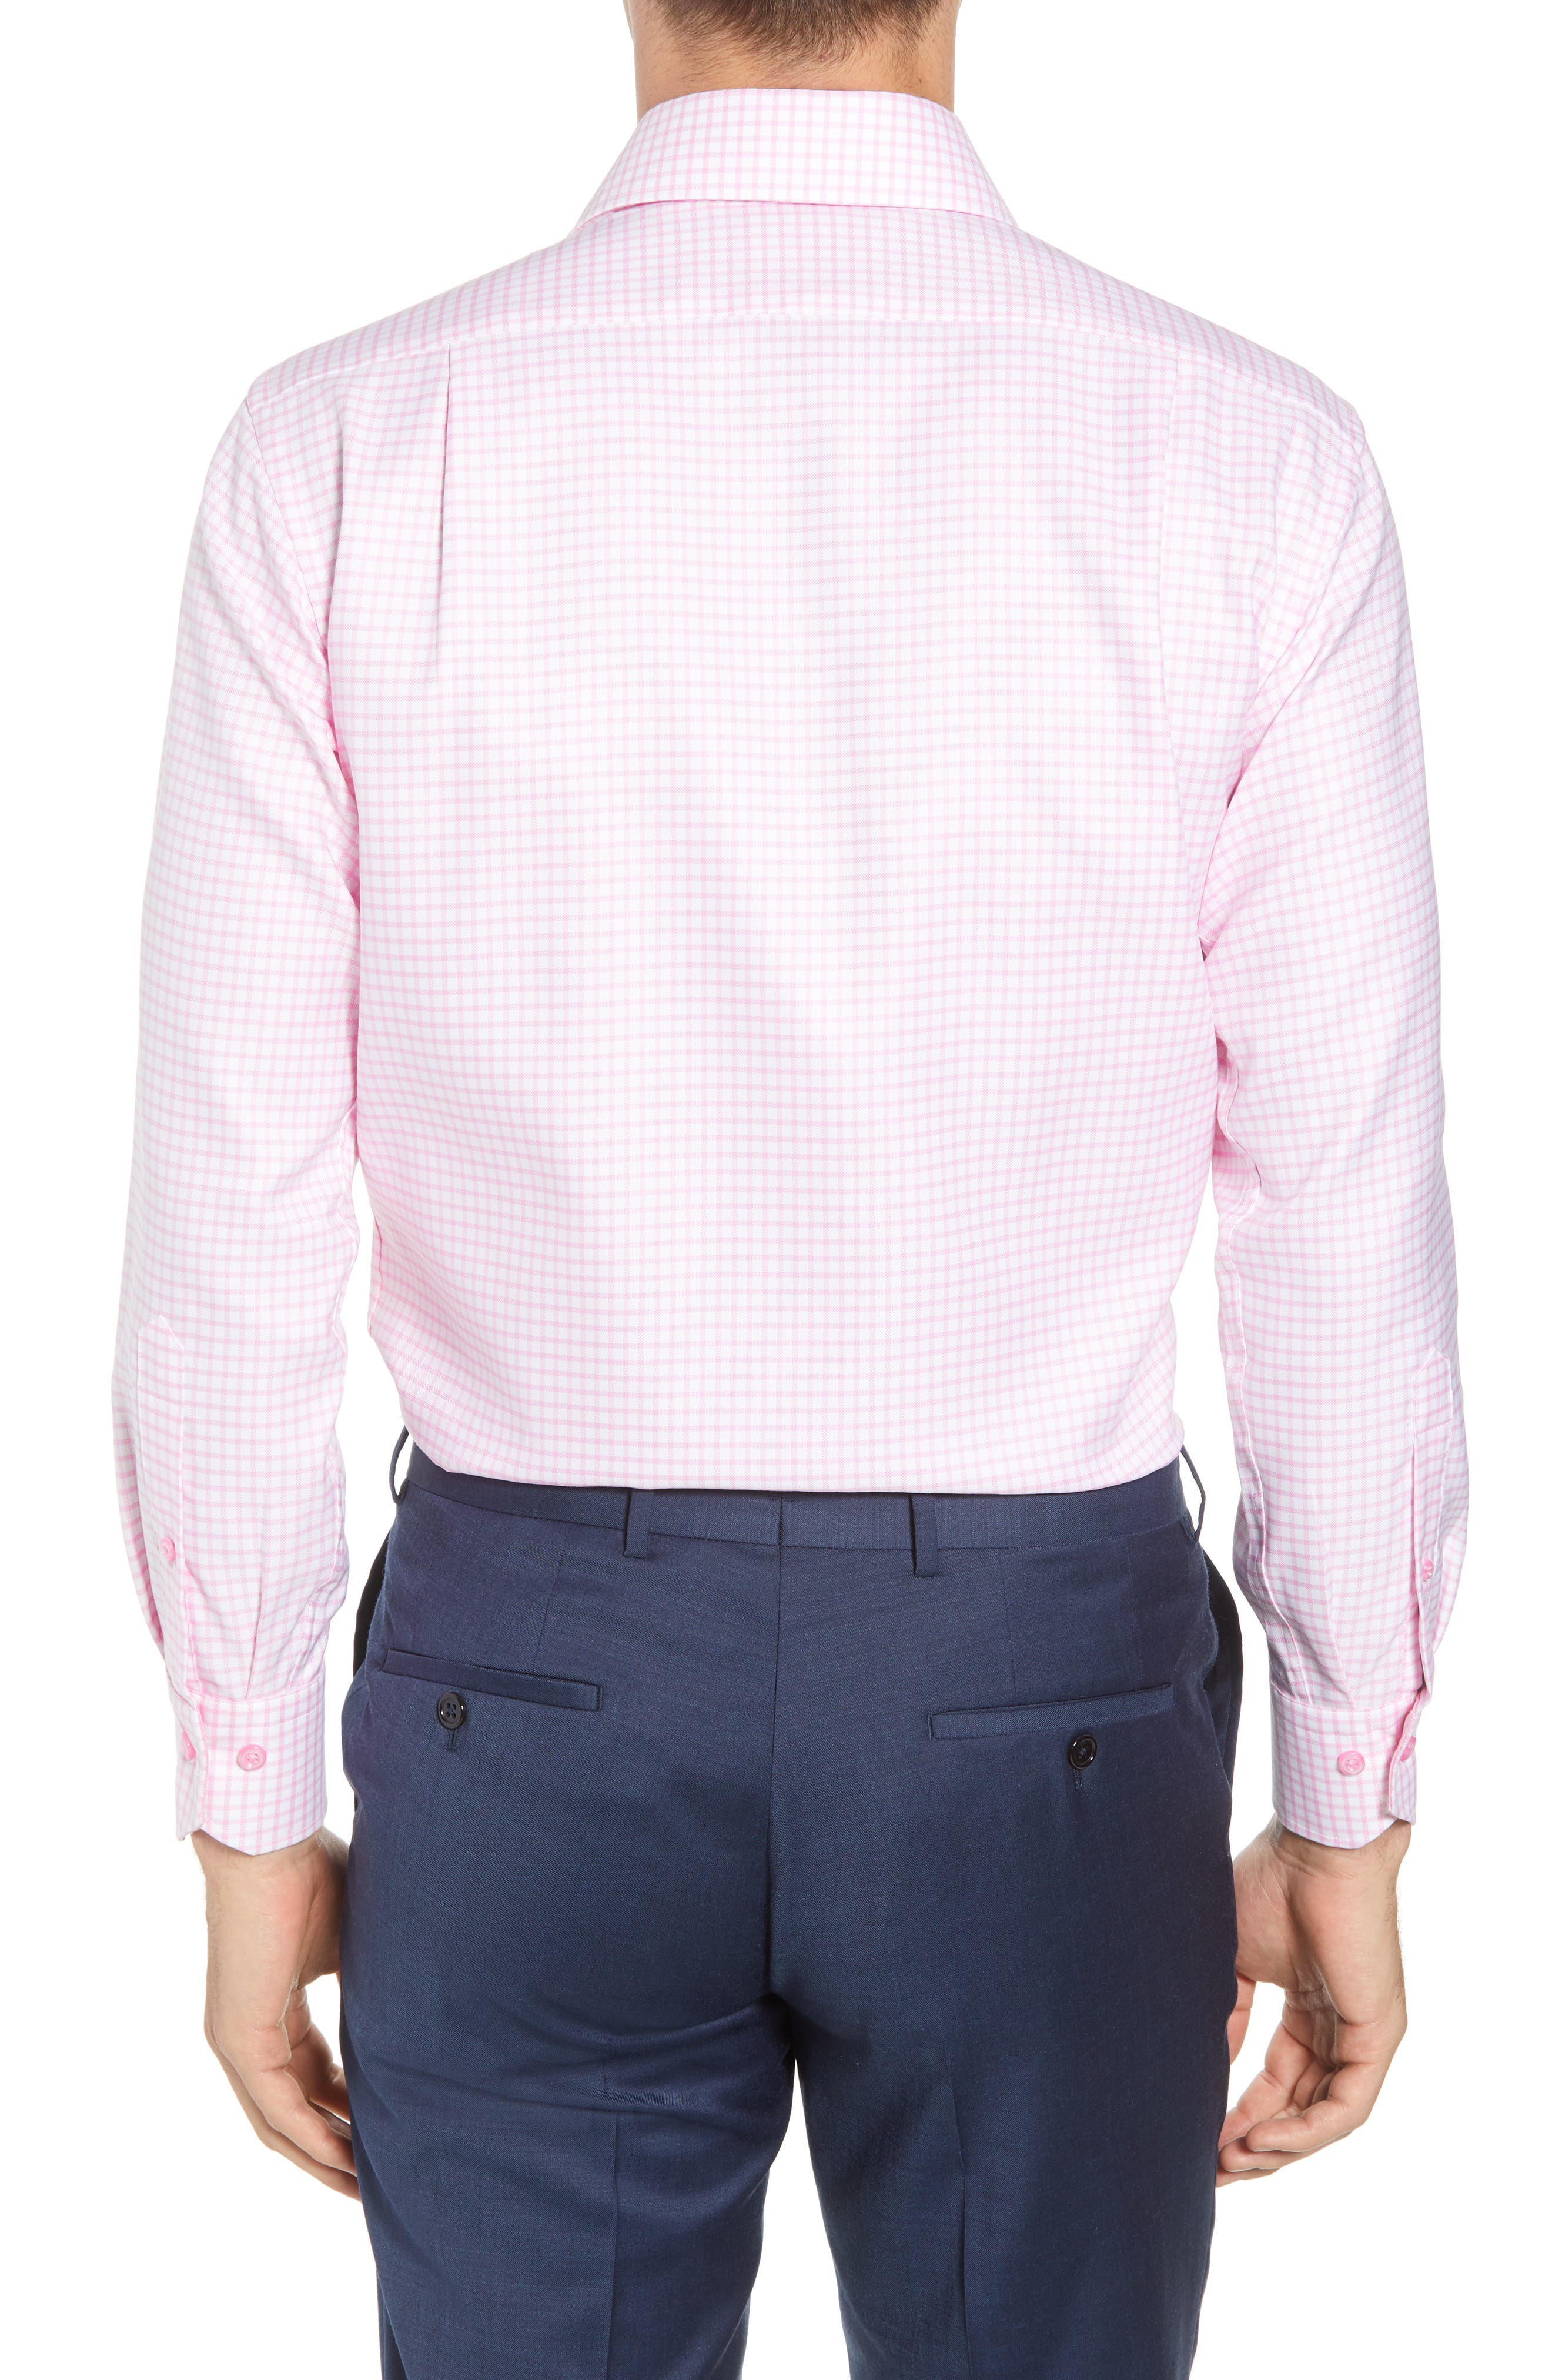 Trim Fit Check Dress Shirt,                             Alternate thumbnail 3, color,                             Pink/ White